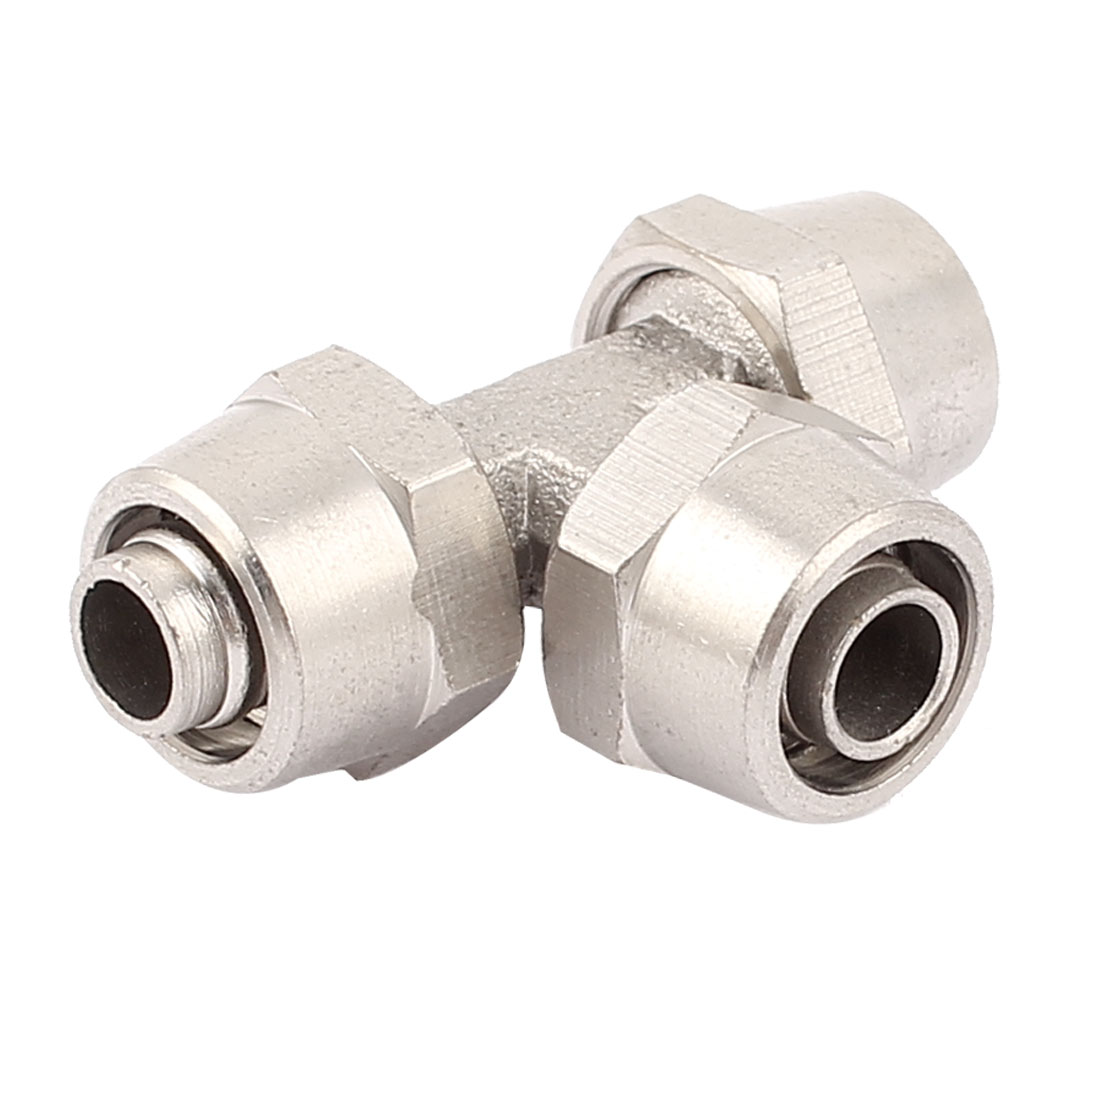 10mm Tube Dia Metal T Shape 3 Ways Pneumatic Quick Coupler Connector